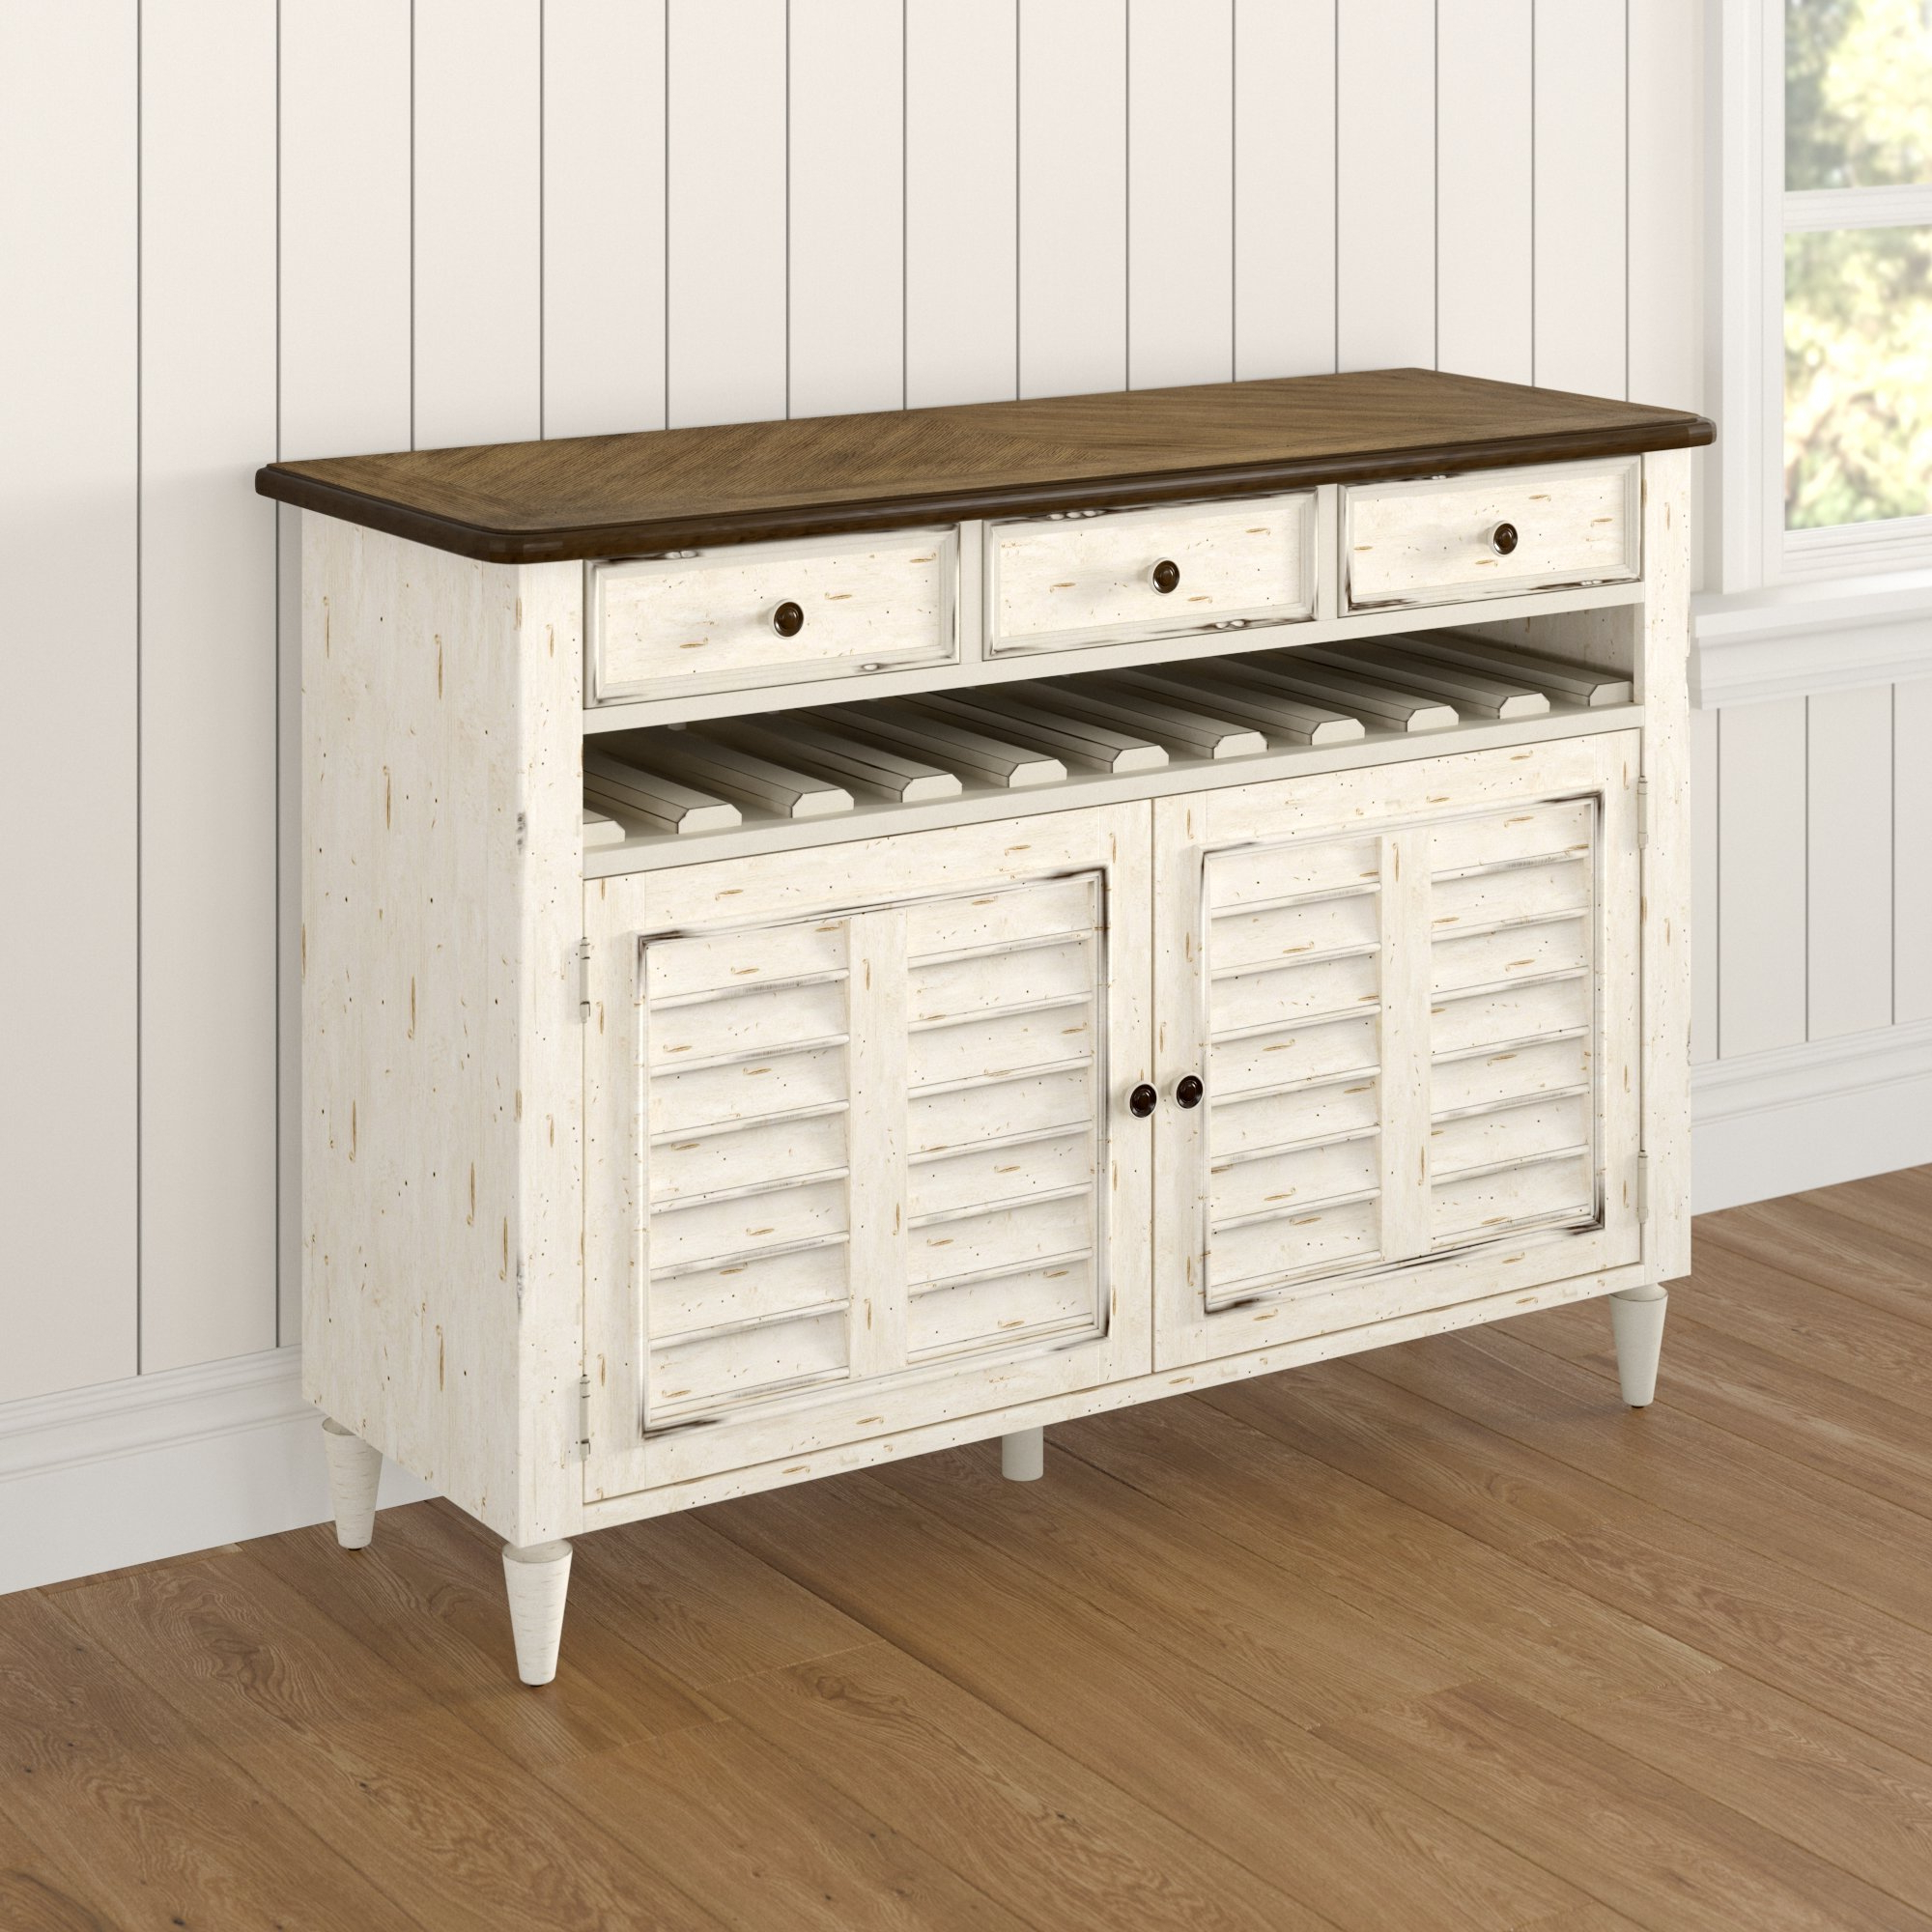 Wayfair Regarding Drummond 4 Drawer Sideboards (Gallery 5 of 20)